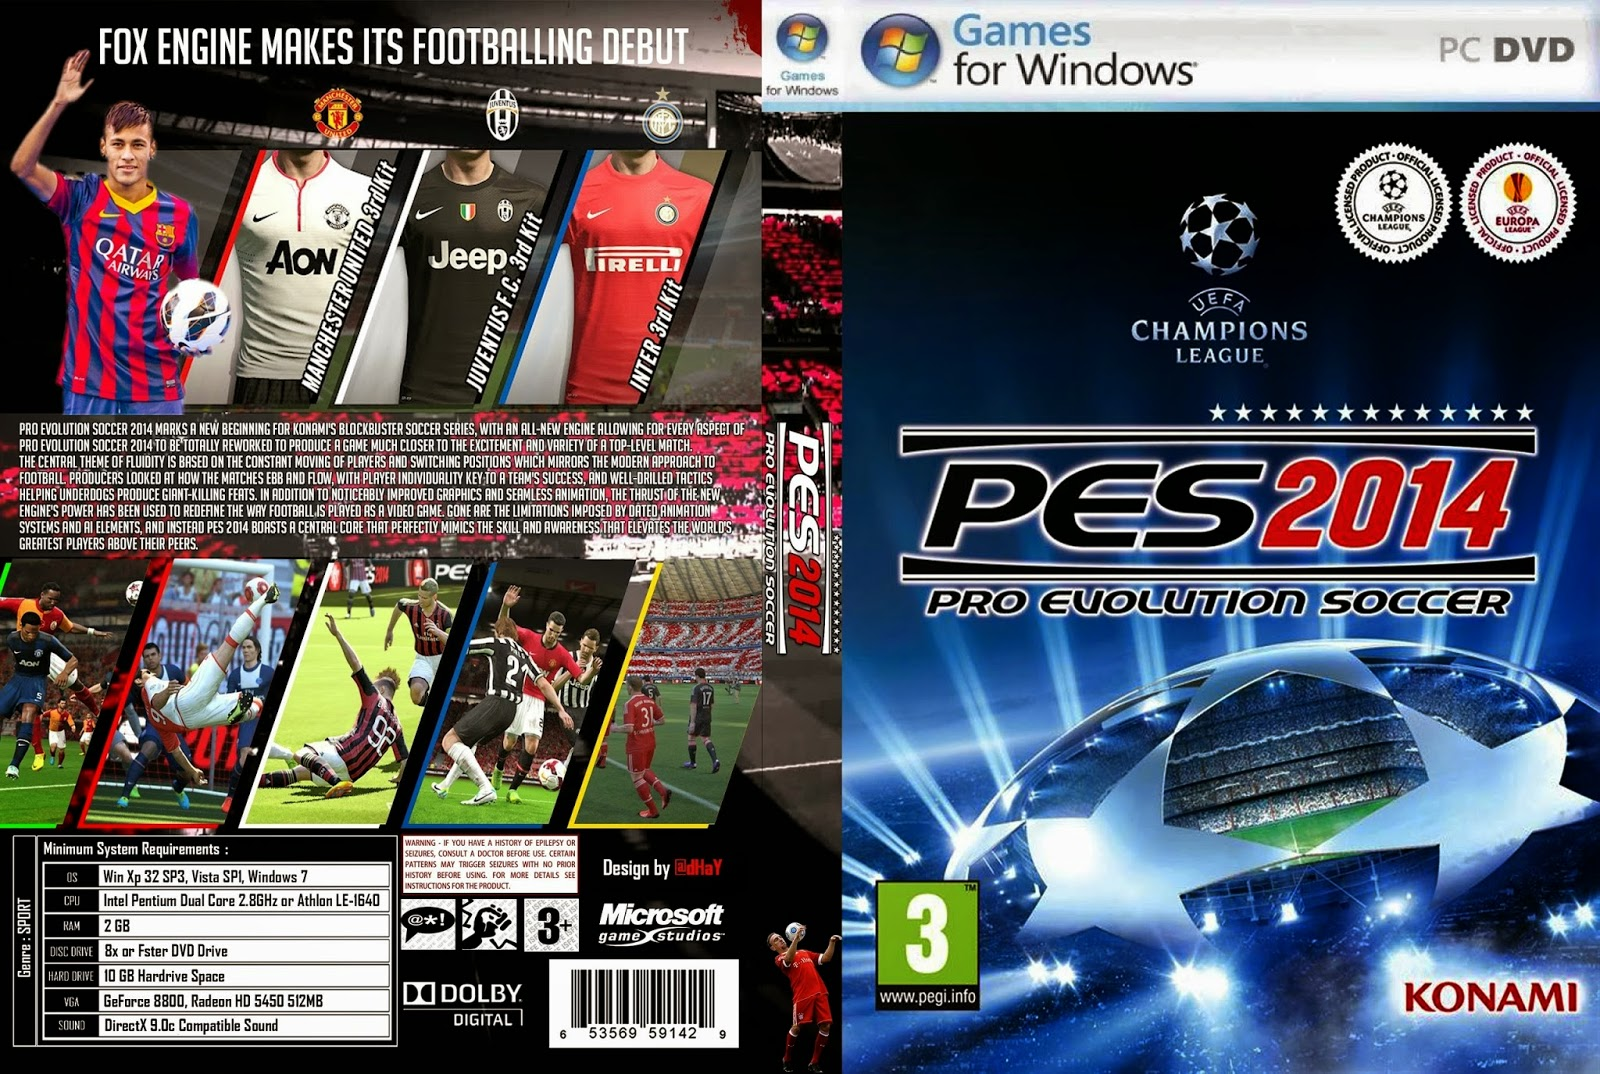 PES/Pro Evolution Soccer 2014 PC DVD Capa